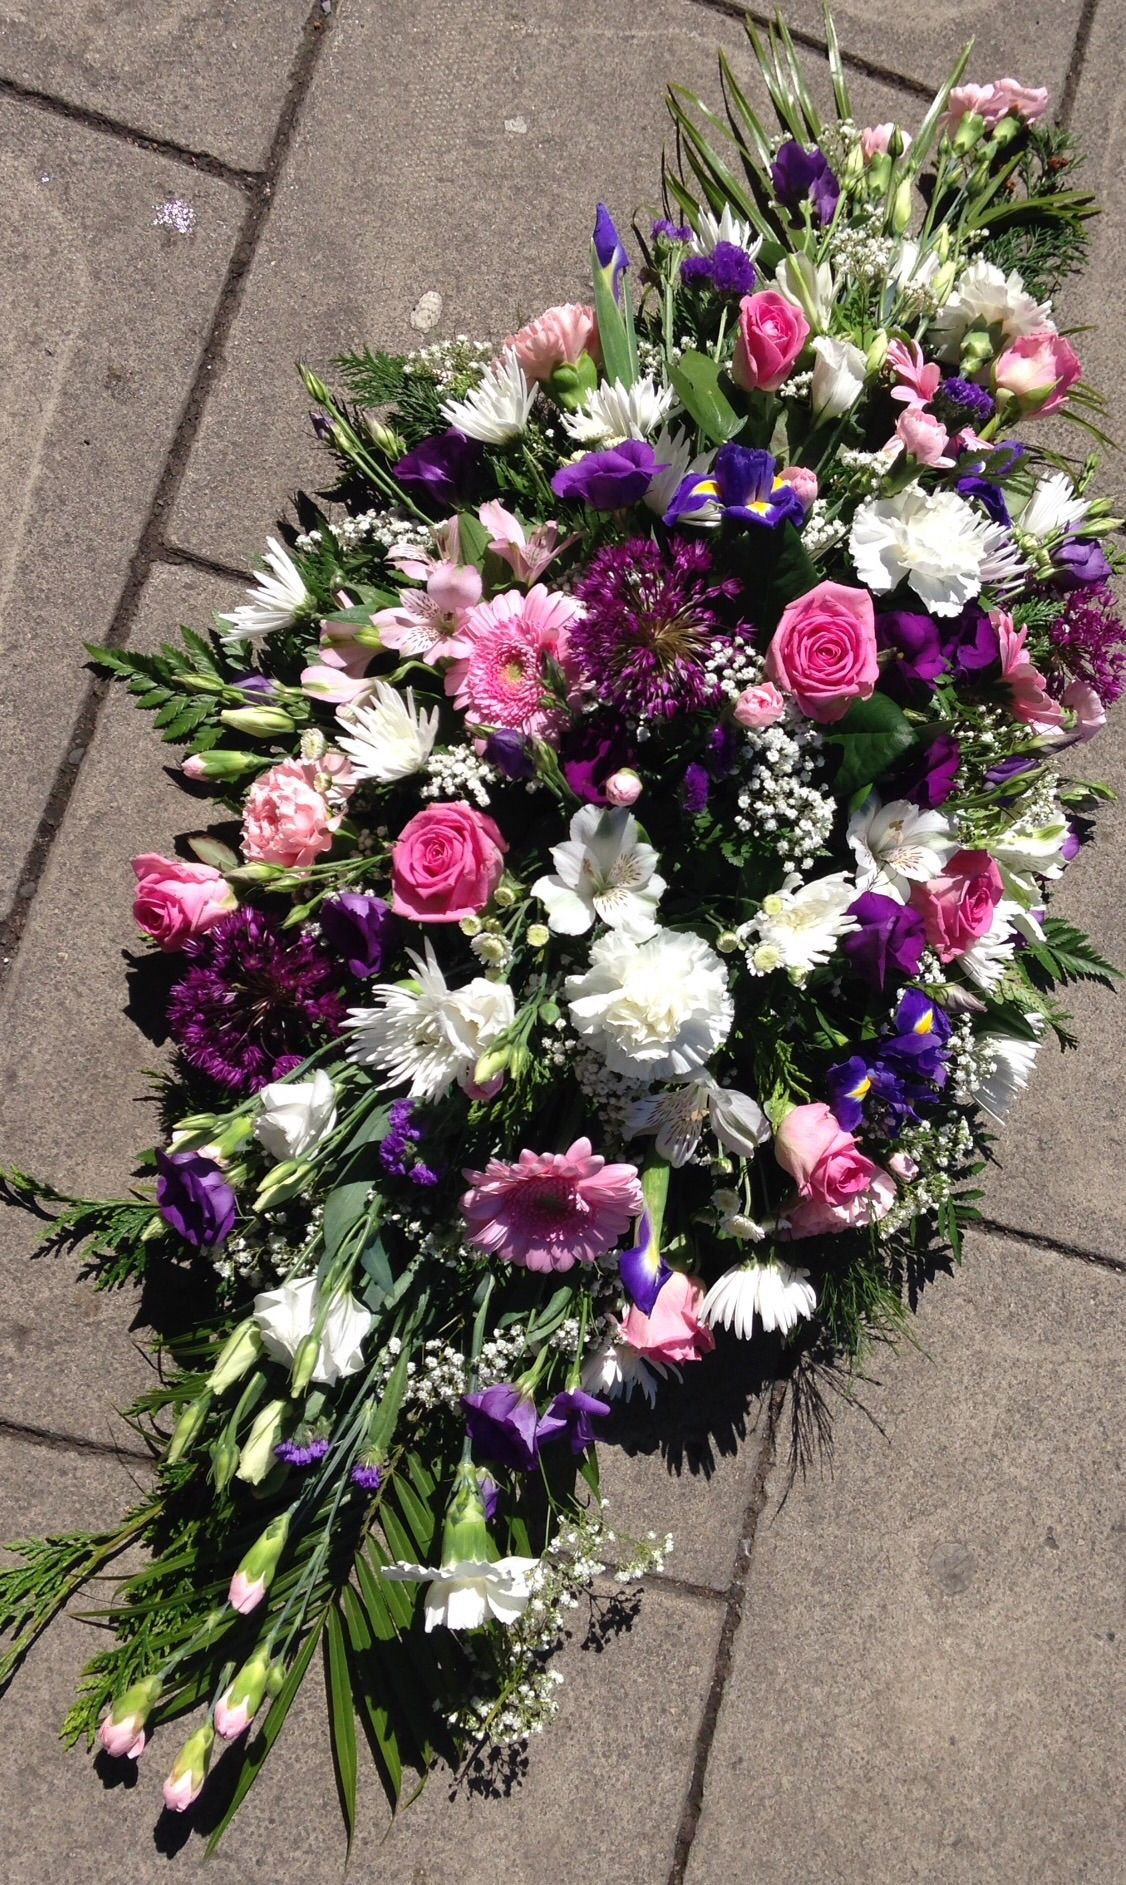 Casket spray pinks white and purples funeral tribute butterflies casket spray pinks white and purples funeral tribute butterflies and blooms uk izmirmasajfo Gallery